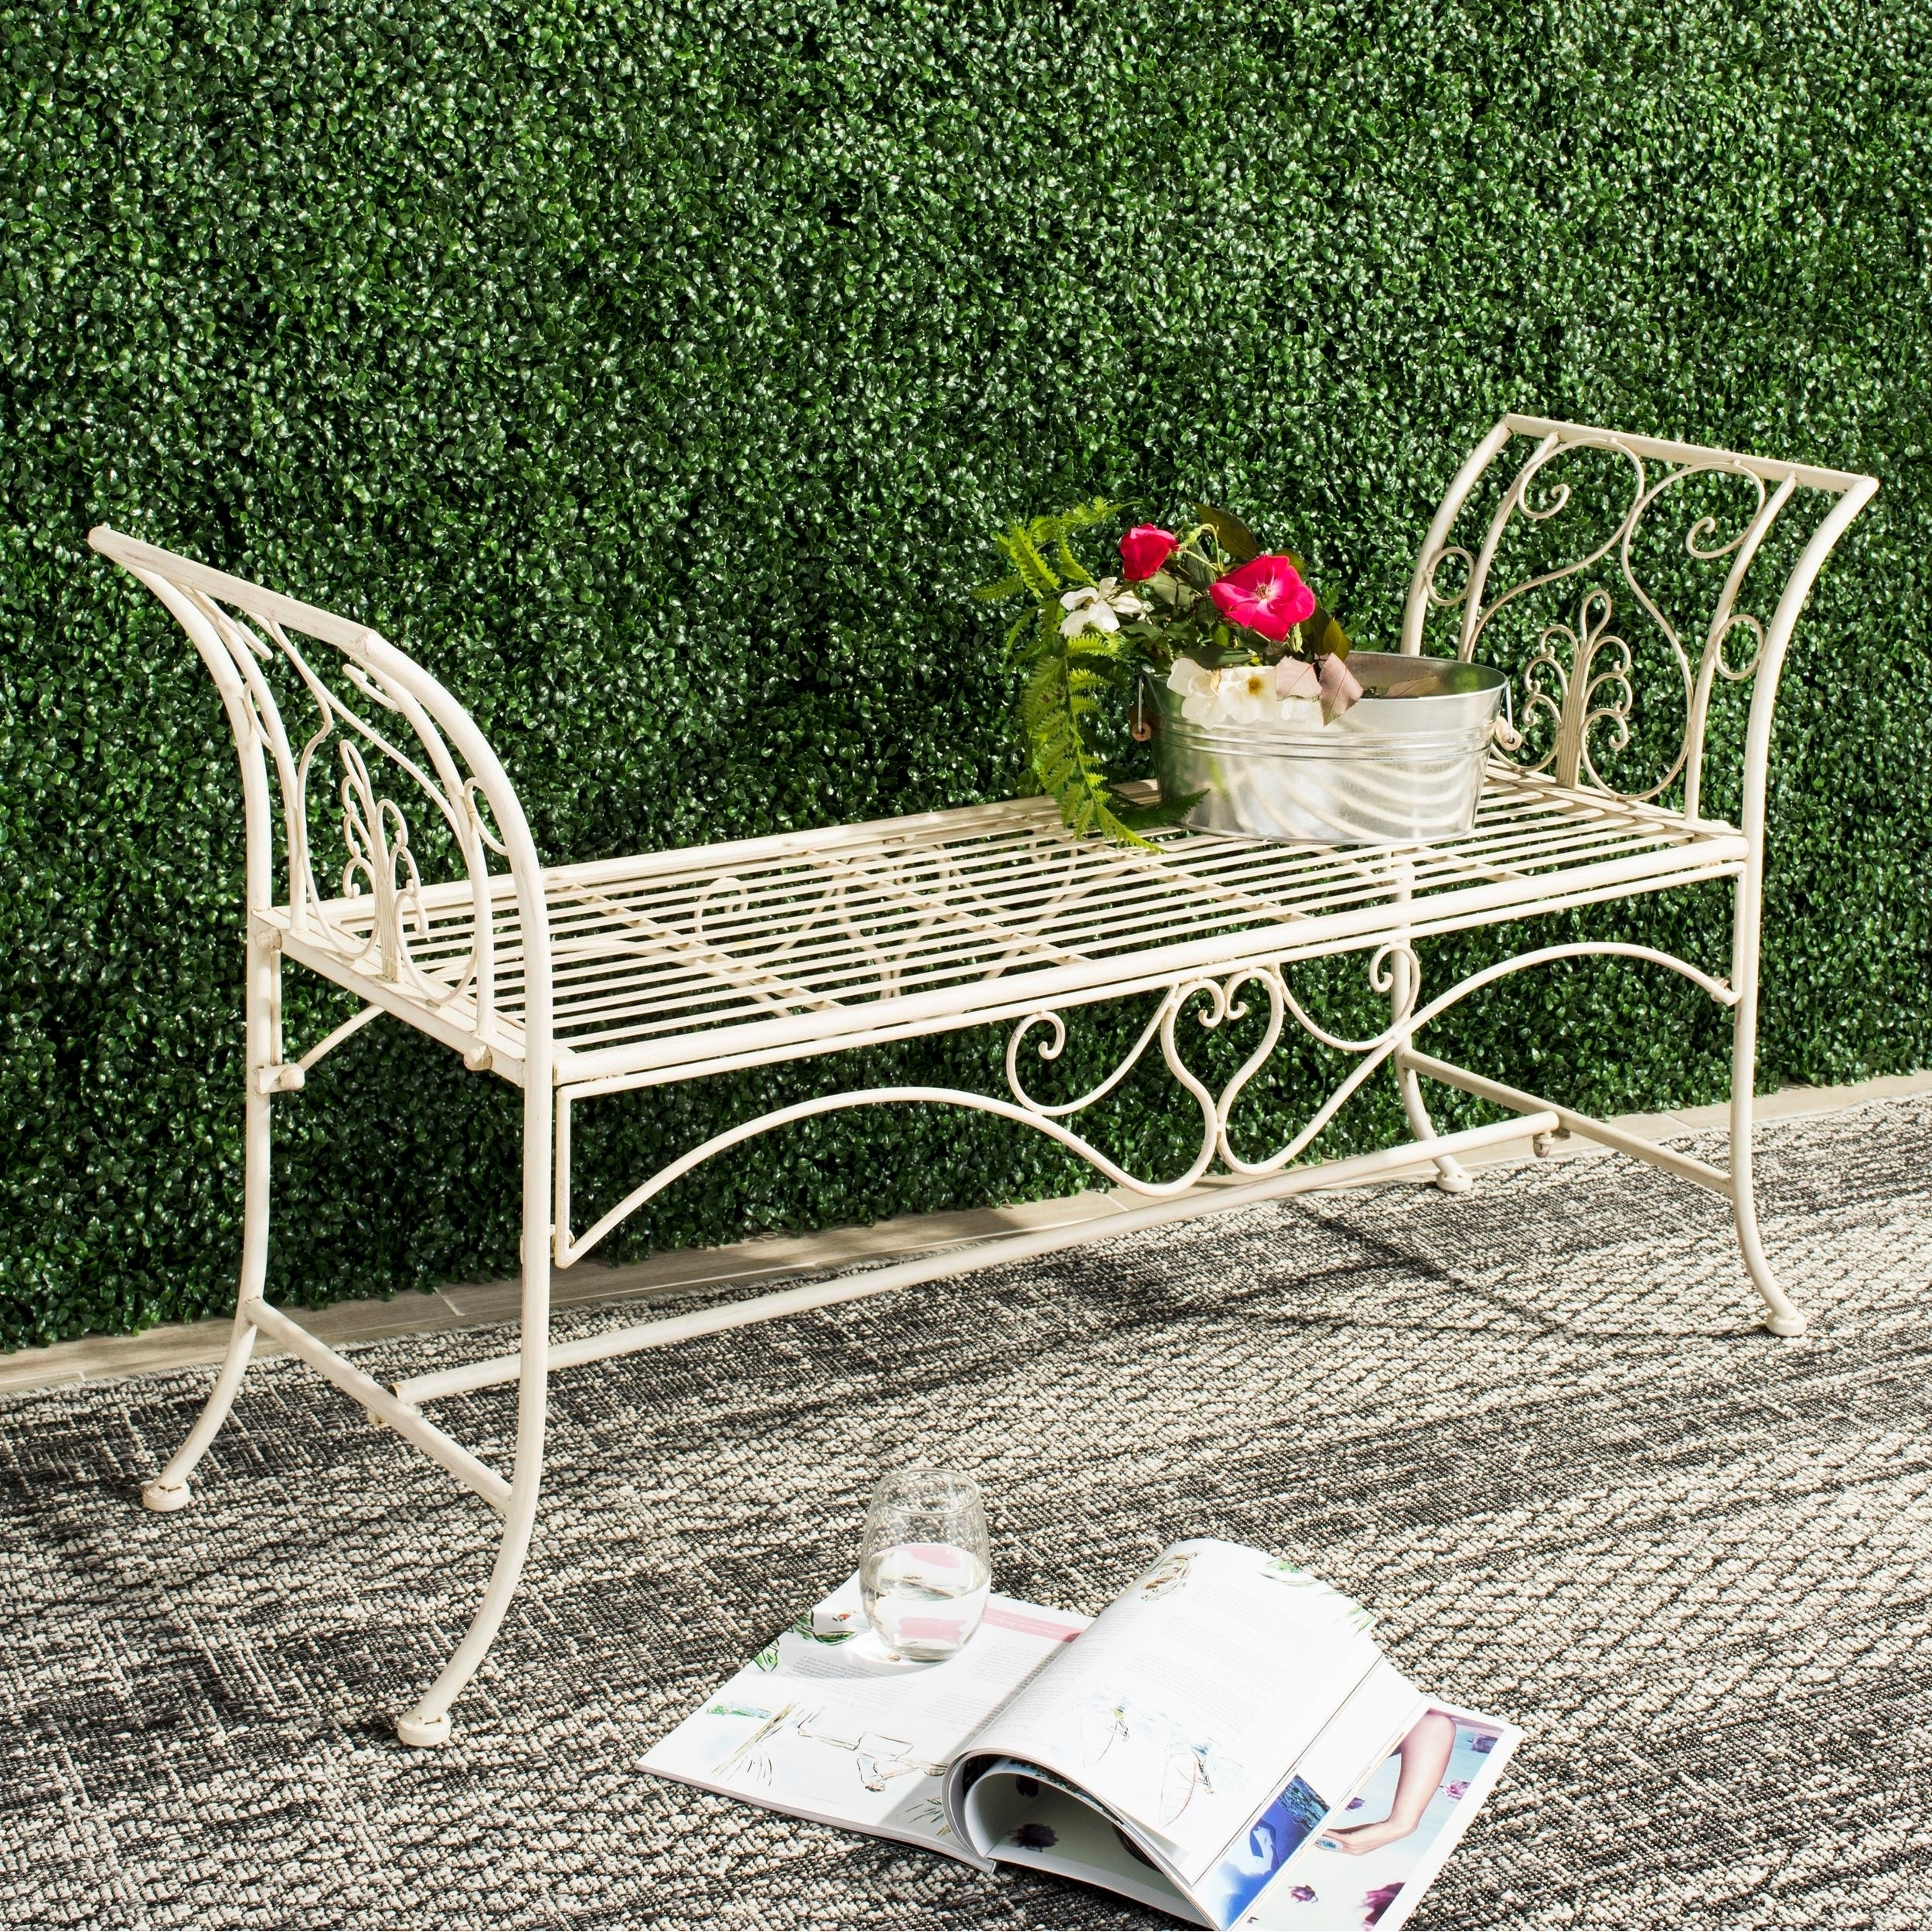 Shop Safavieh Outdoor Living Adina White Wrought Iron Garden Bench 51 Inches 51 3 X 16 3 X 27 Overstock 18507250